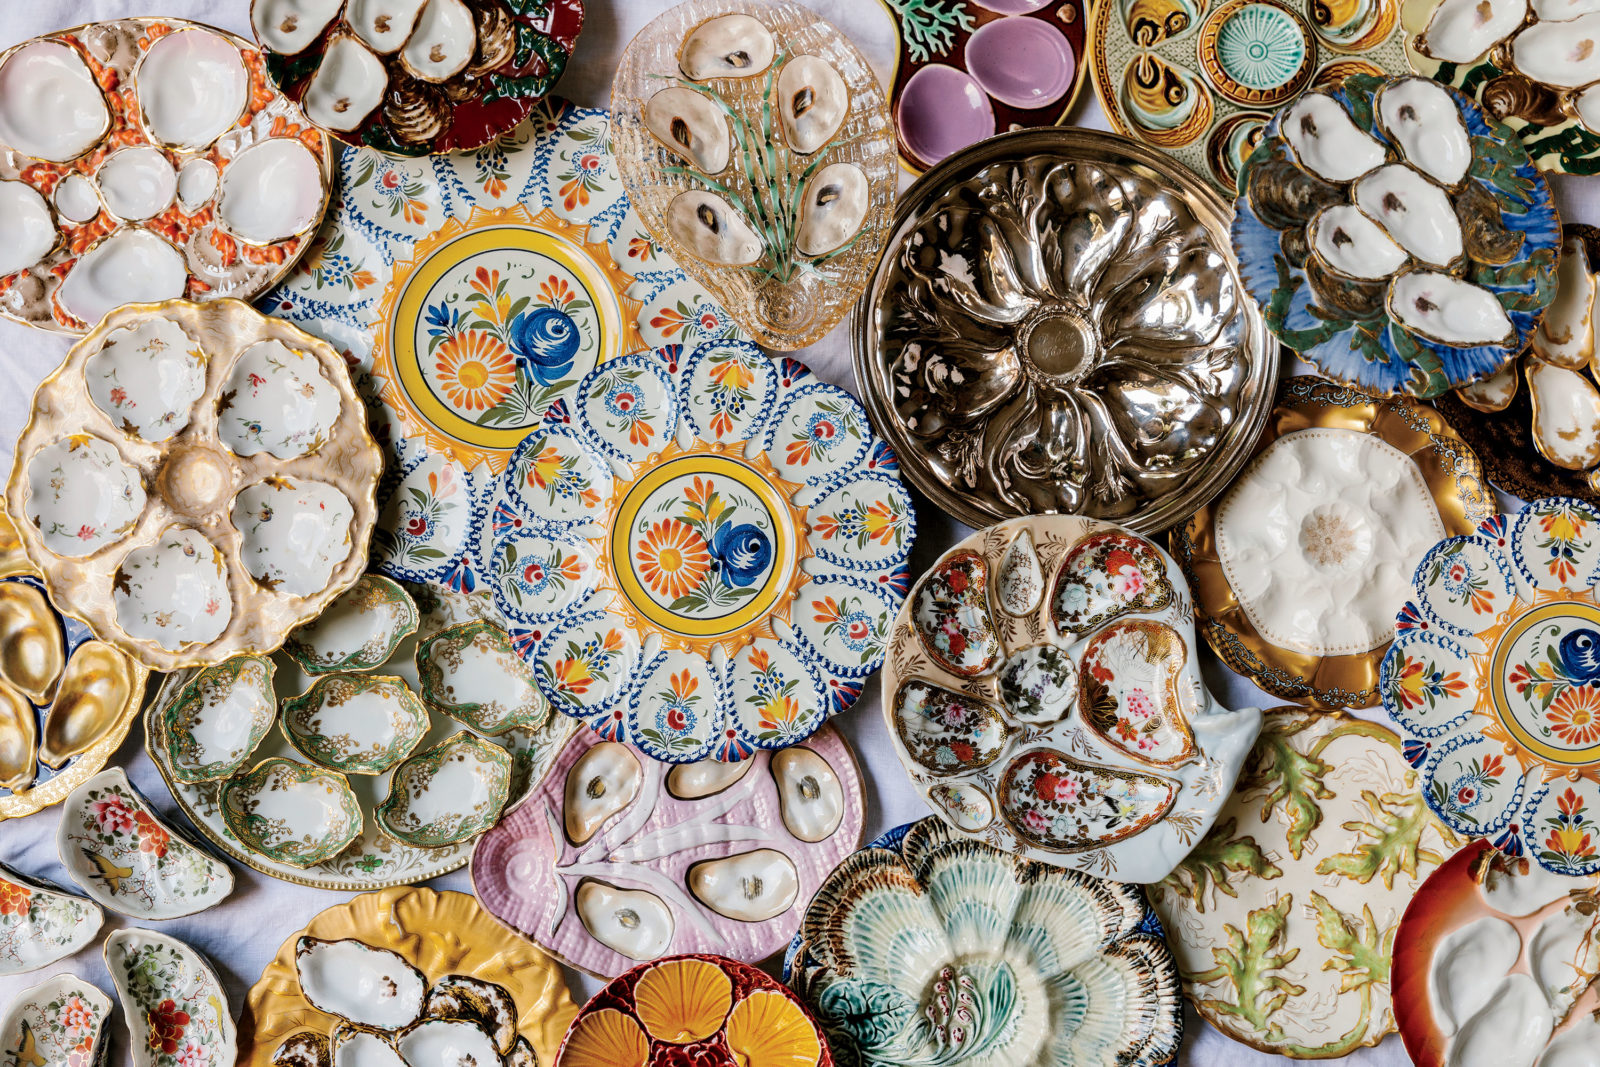 Linda Peterson's collection of oyster plates, photographed by Kathryn McCrary for  Garden & Gun Magazine .